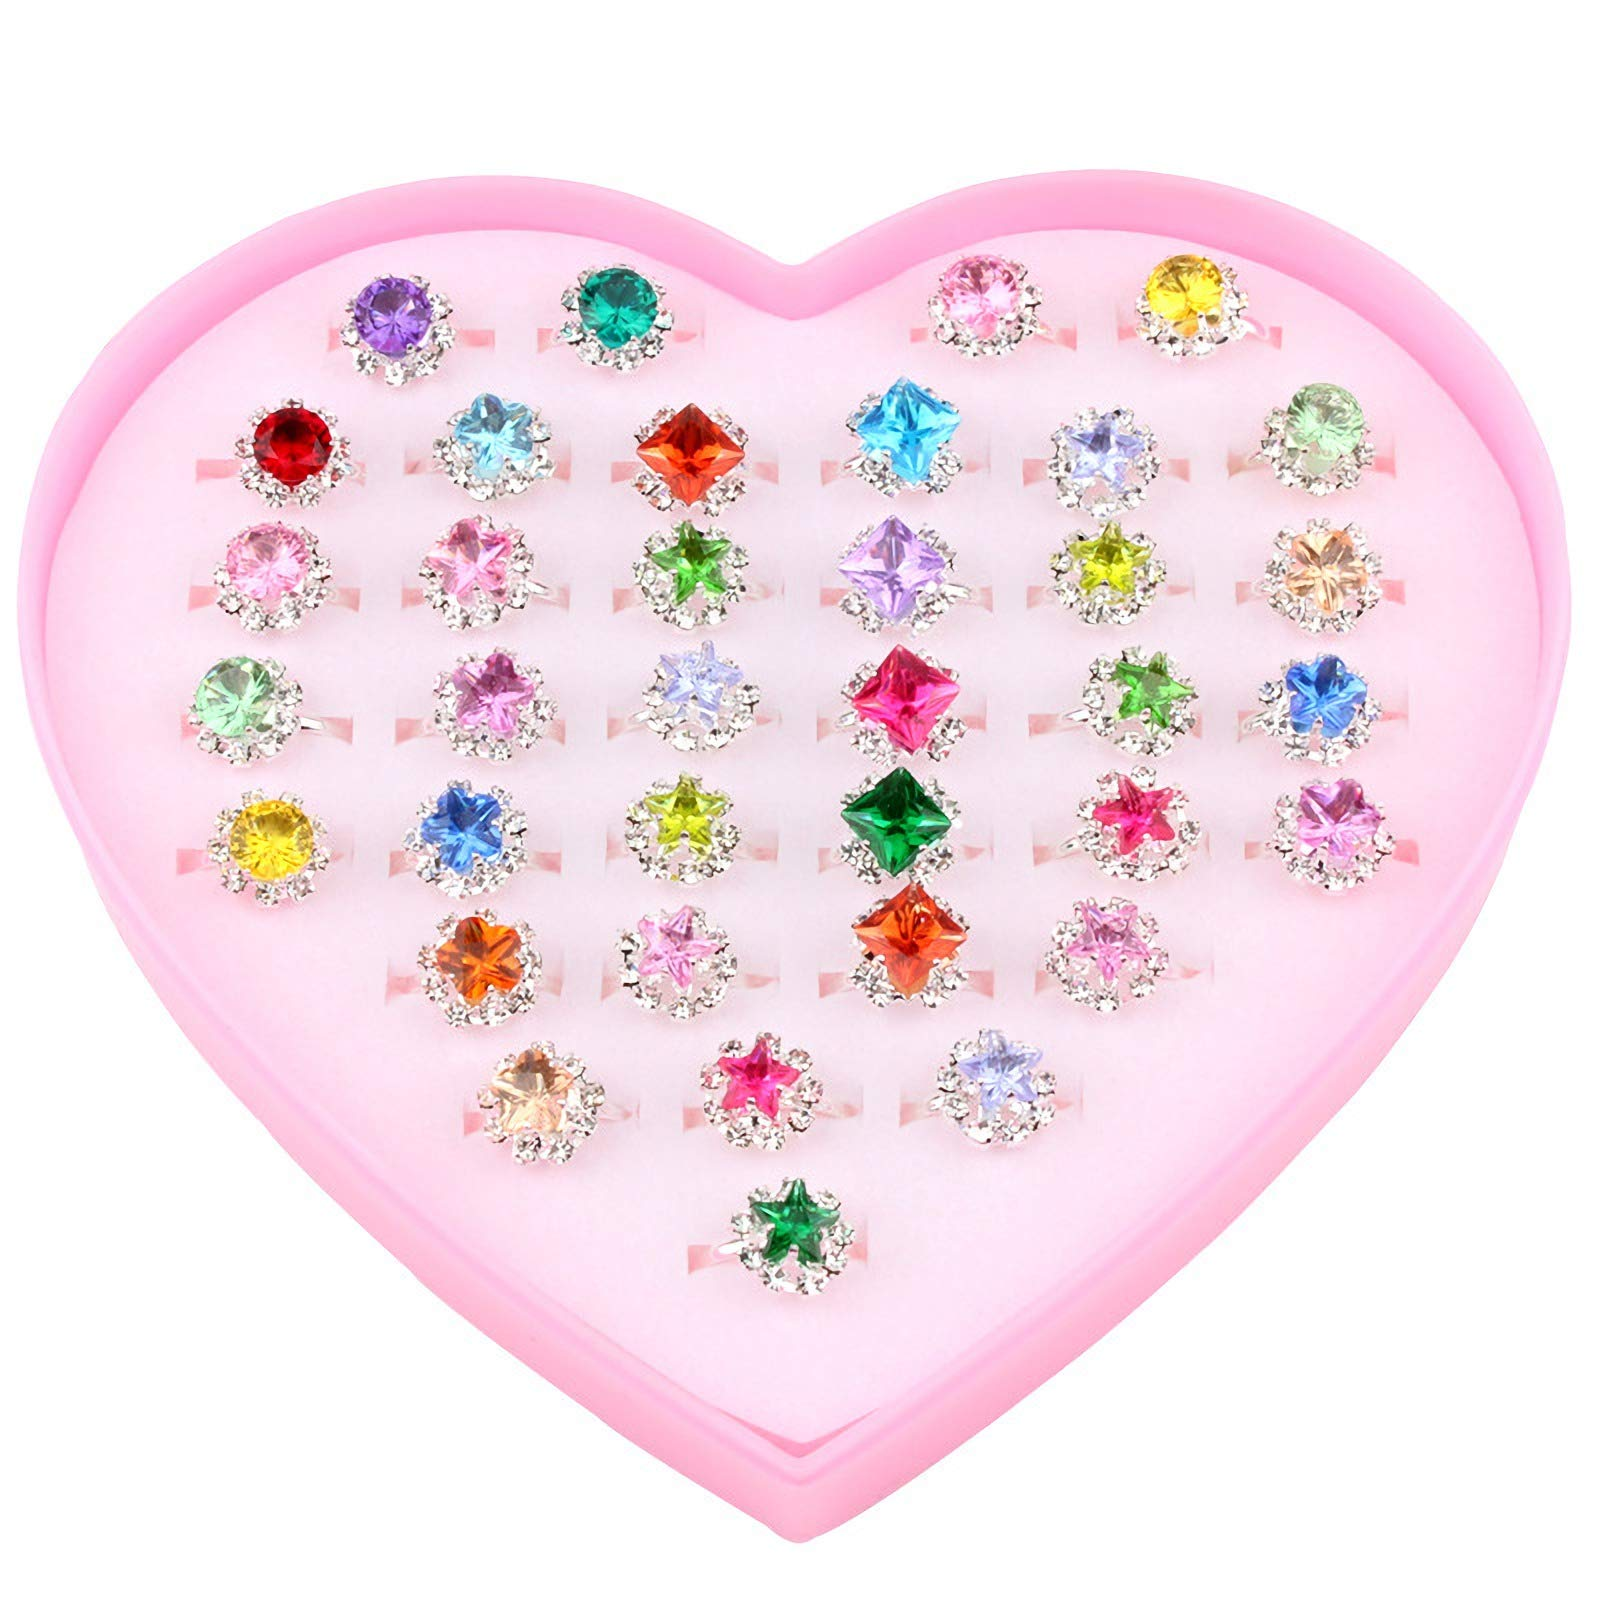 Fineder 36pcs Colorful Rhinestone Gem Rings in Box, Adjustable Little Girl Jewel Rings in Box Children Kids Little Girl Gift, Girl Pretend Play and Dress up Rings by Fineder